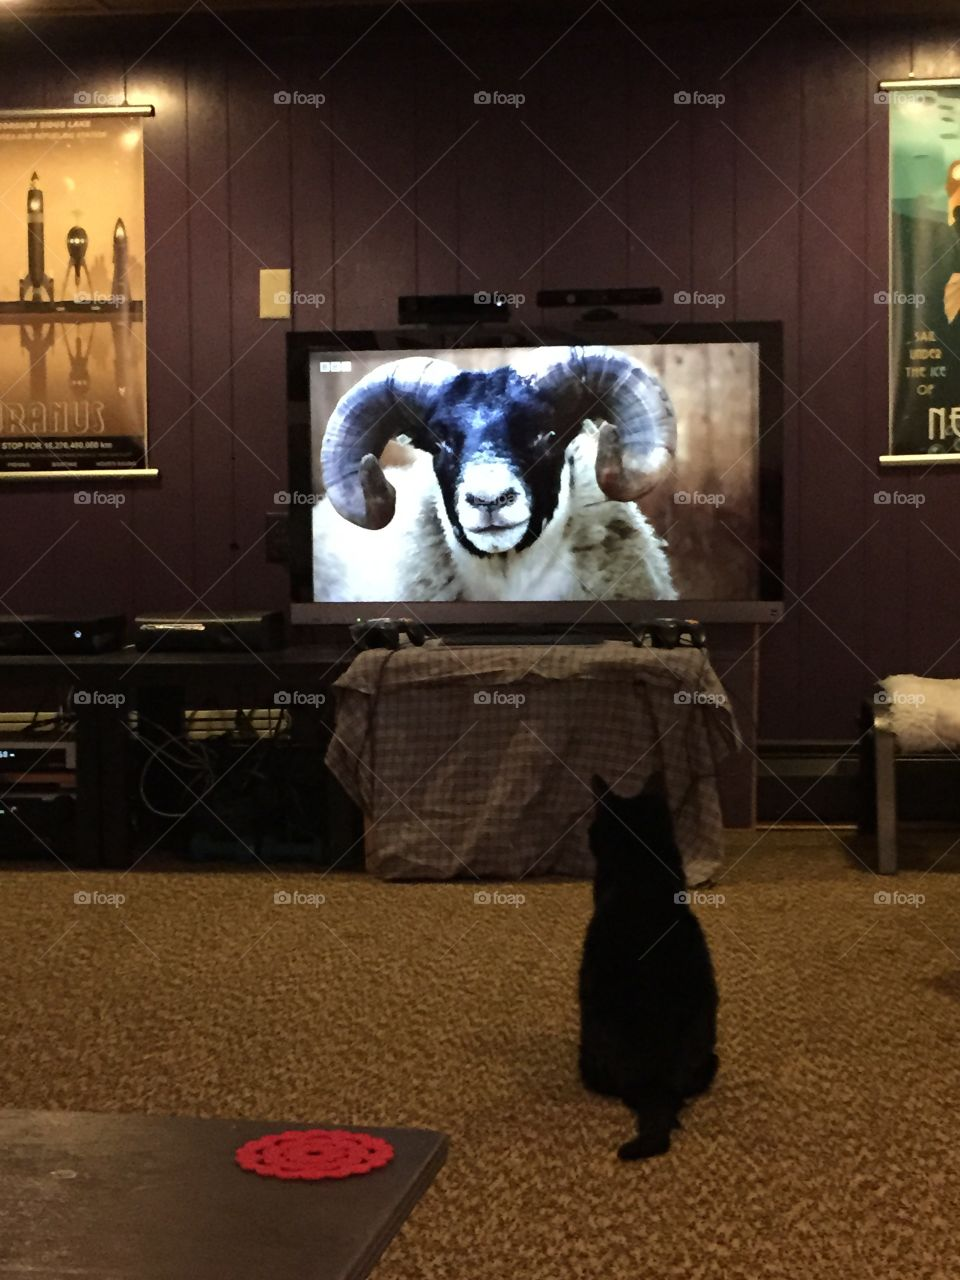 Sheepishly entranced. No idea why my cat was suddenly interested in a close up of s sheep...eyes bigger than stomach....!?